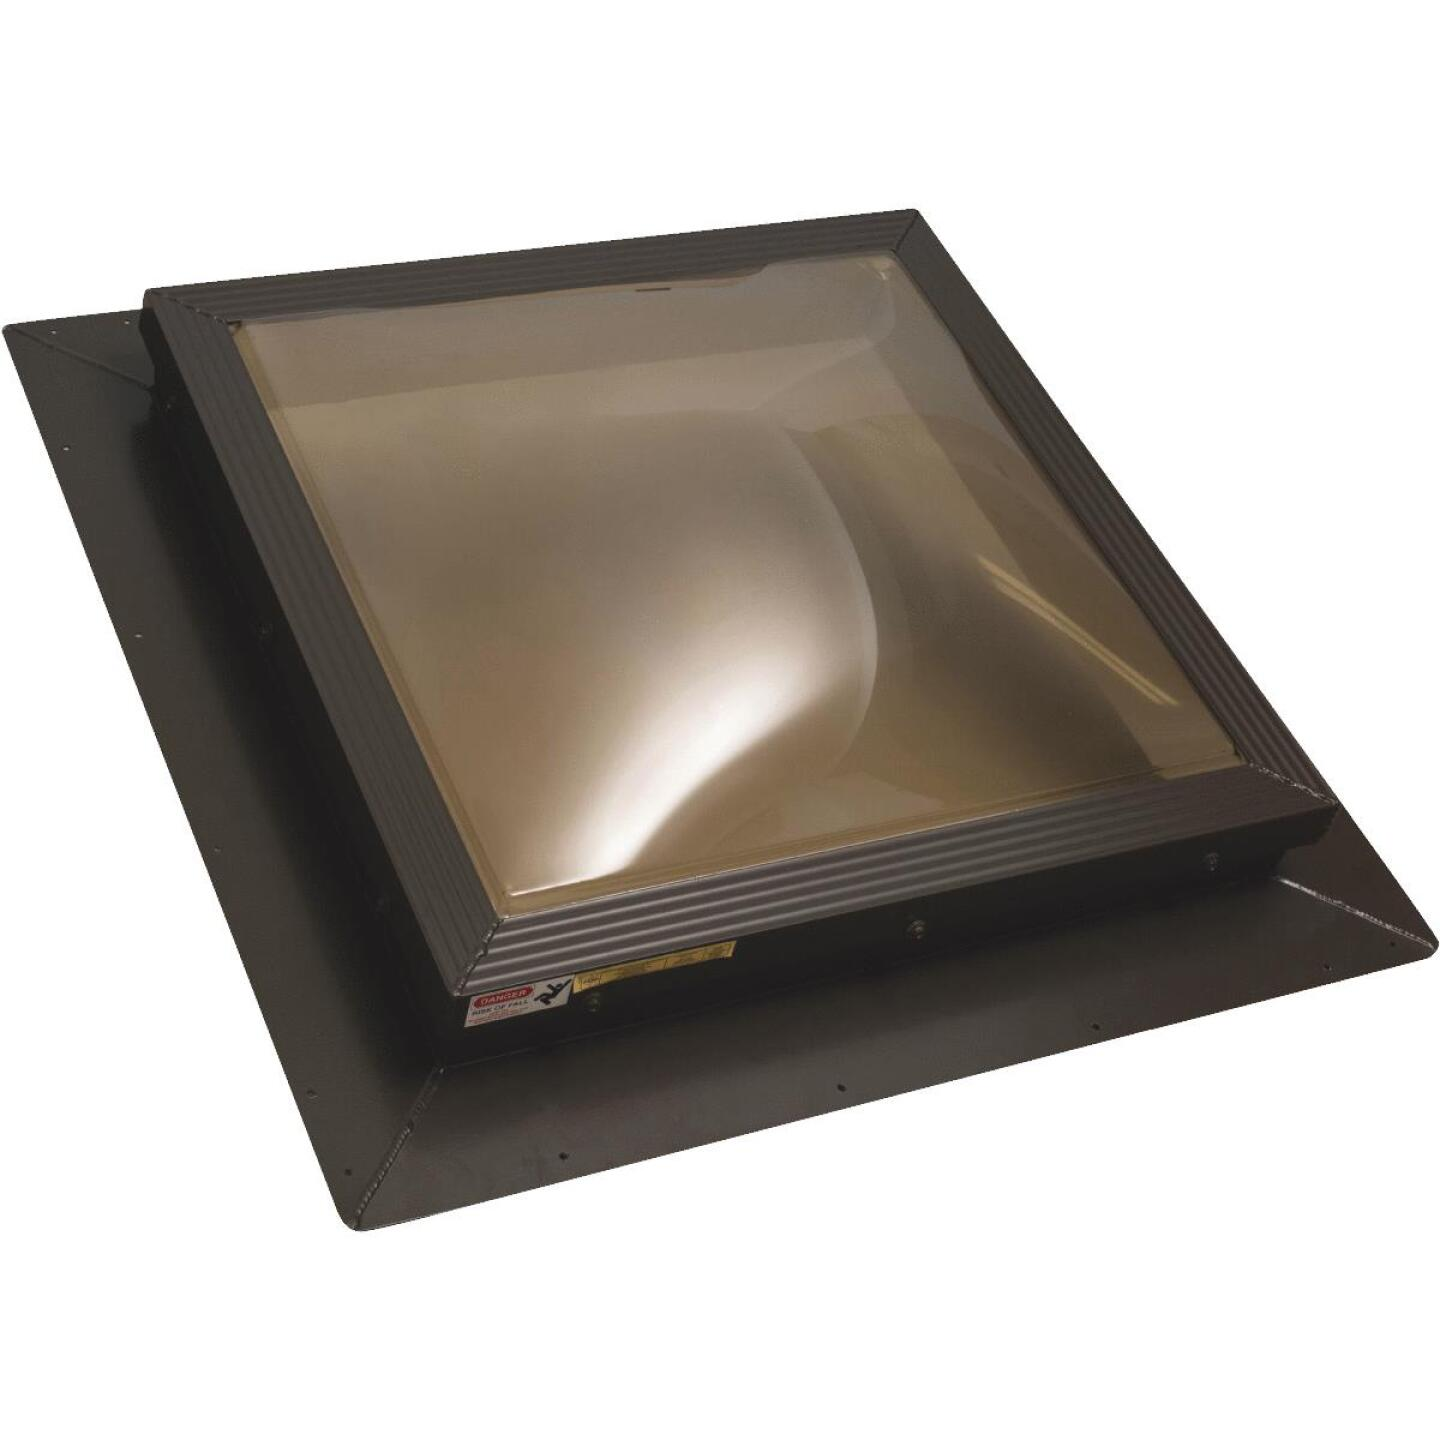 Kennedy Skylights 24 In. x 24 In. Bronze Dome Insulated Skylight Image 1